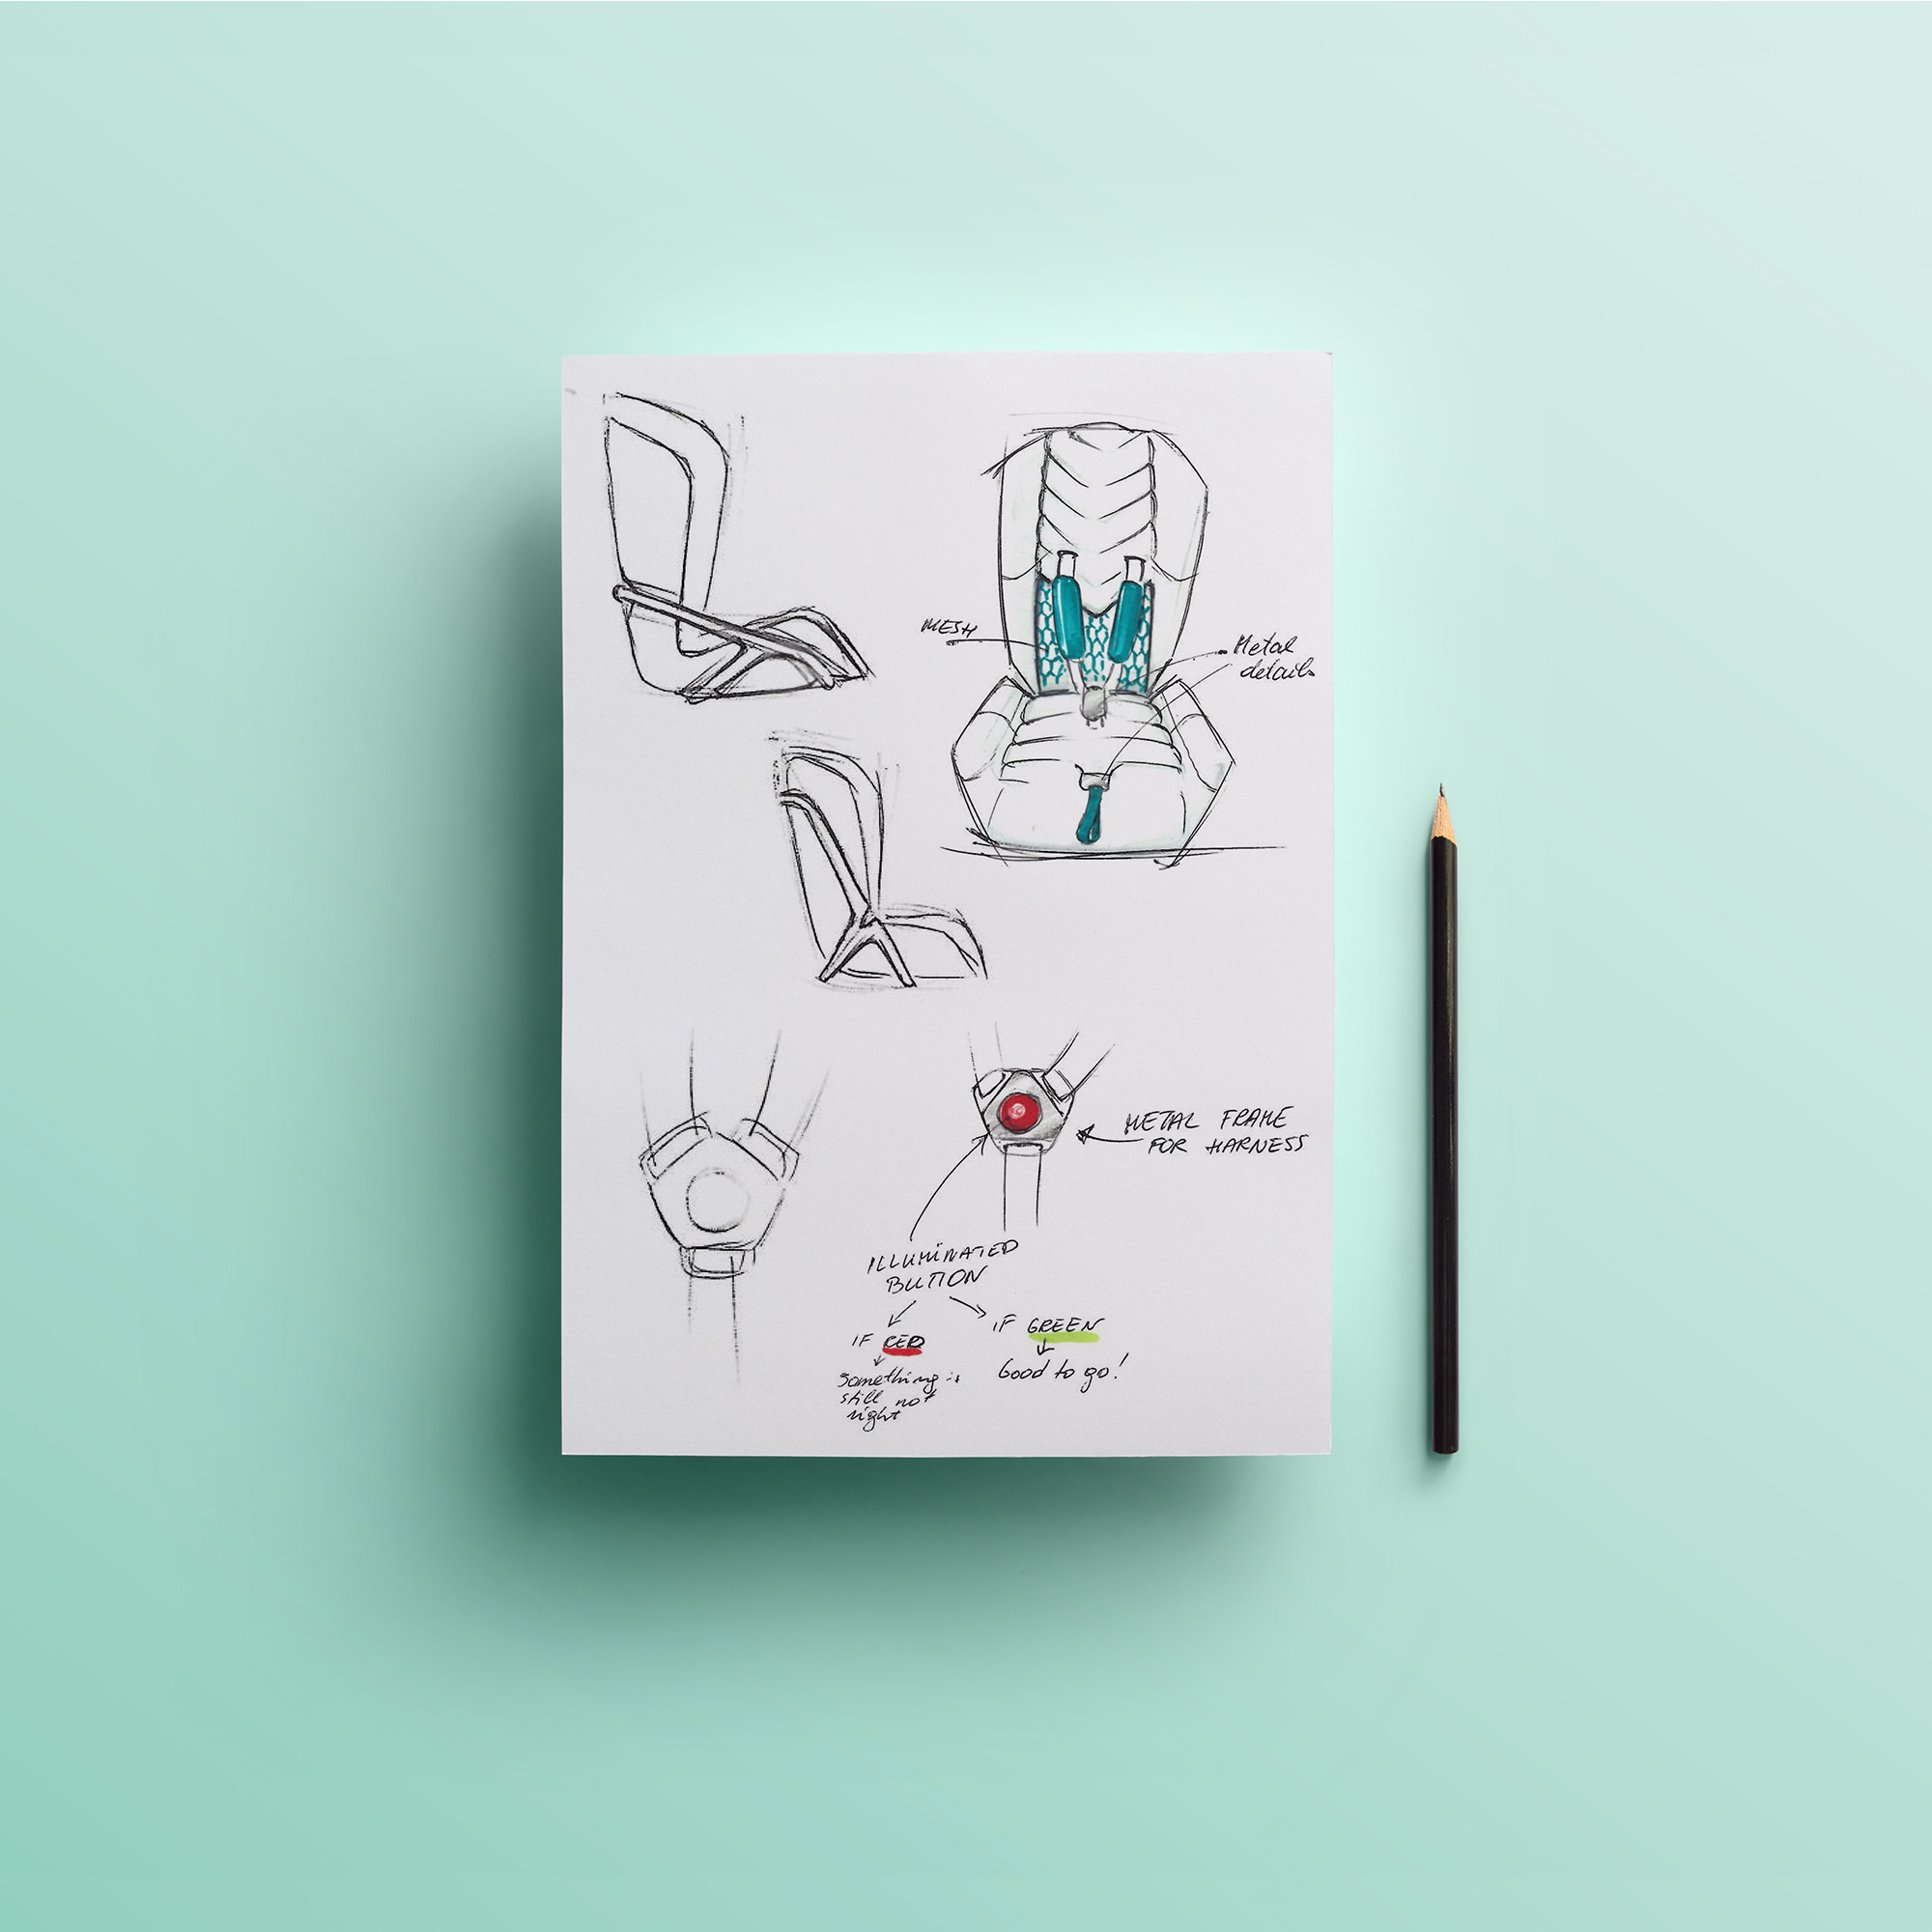 Industrial design sketches for smart baby cart seat design